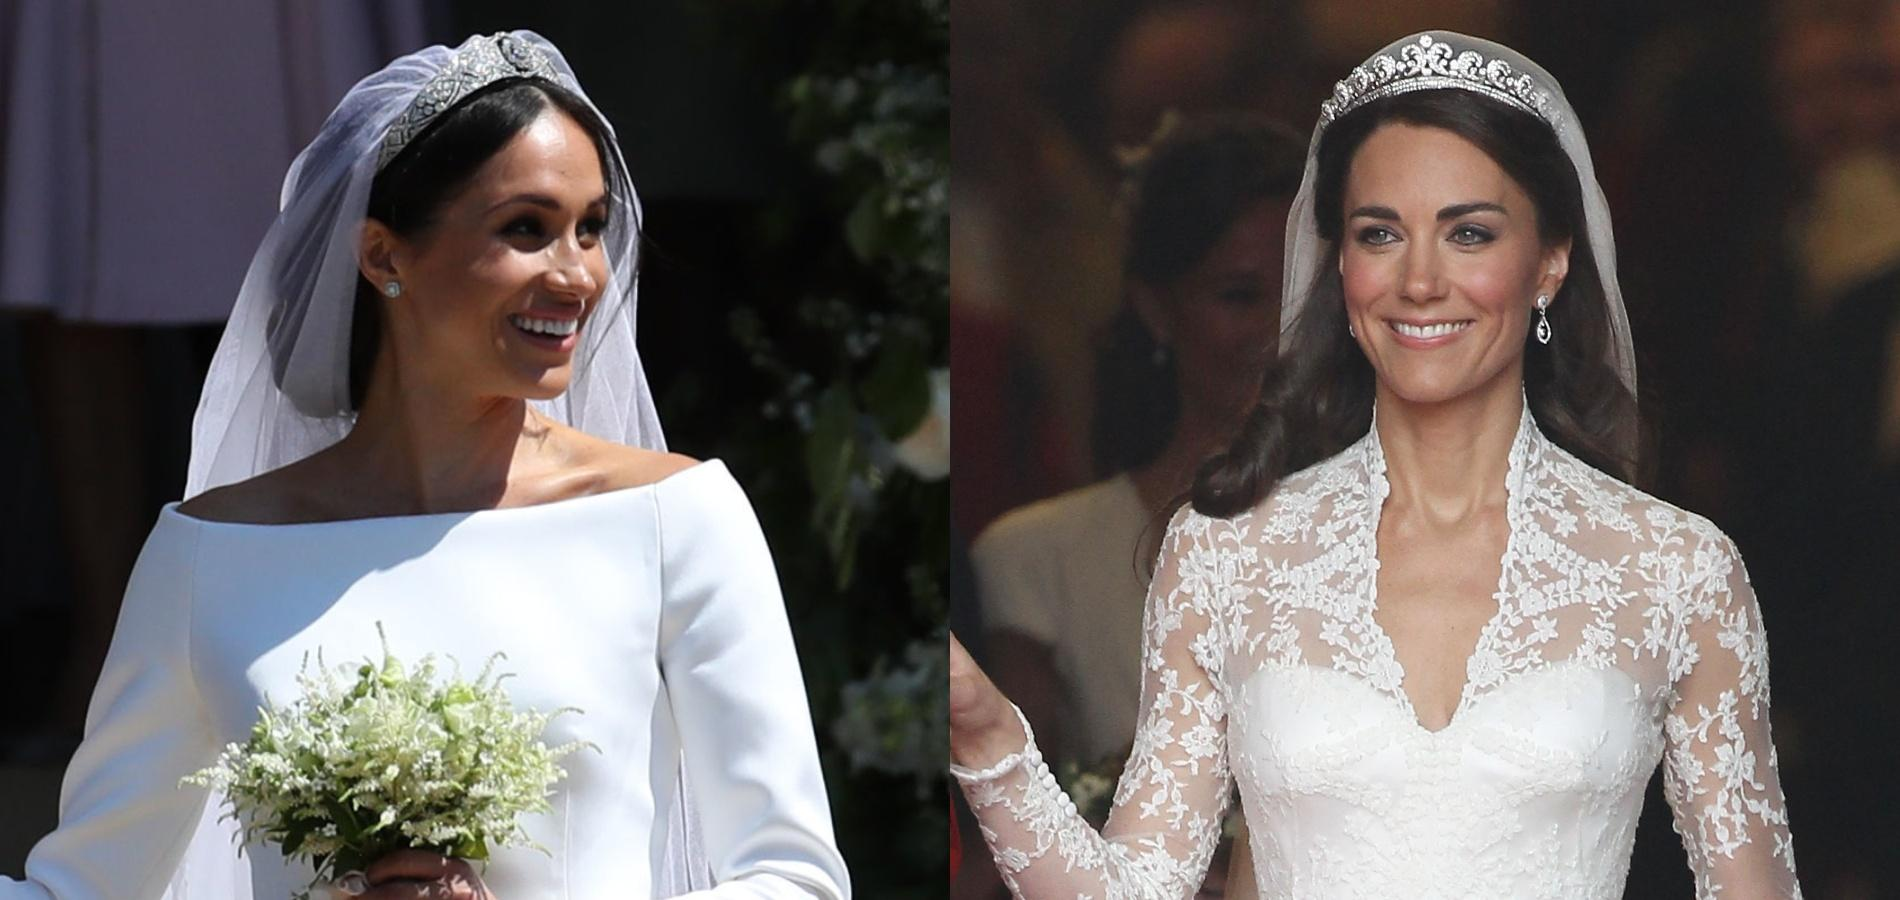 Le Match Des Robes De Mariée De Kate Middleton Et Meghan